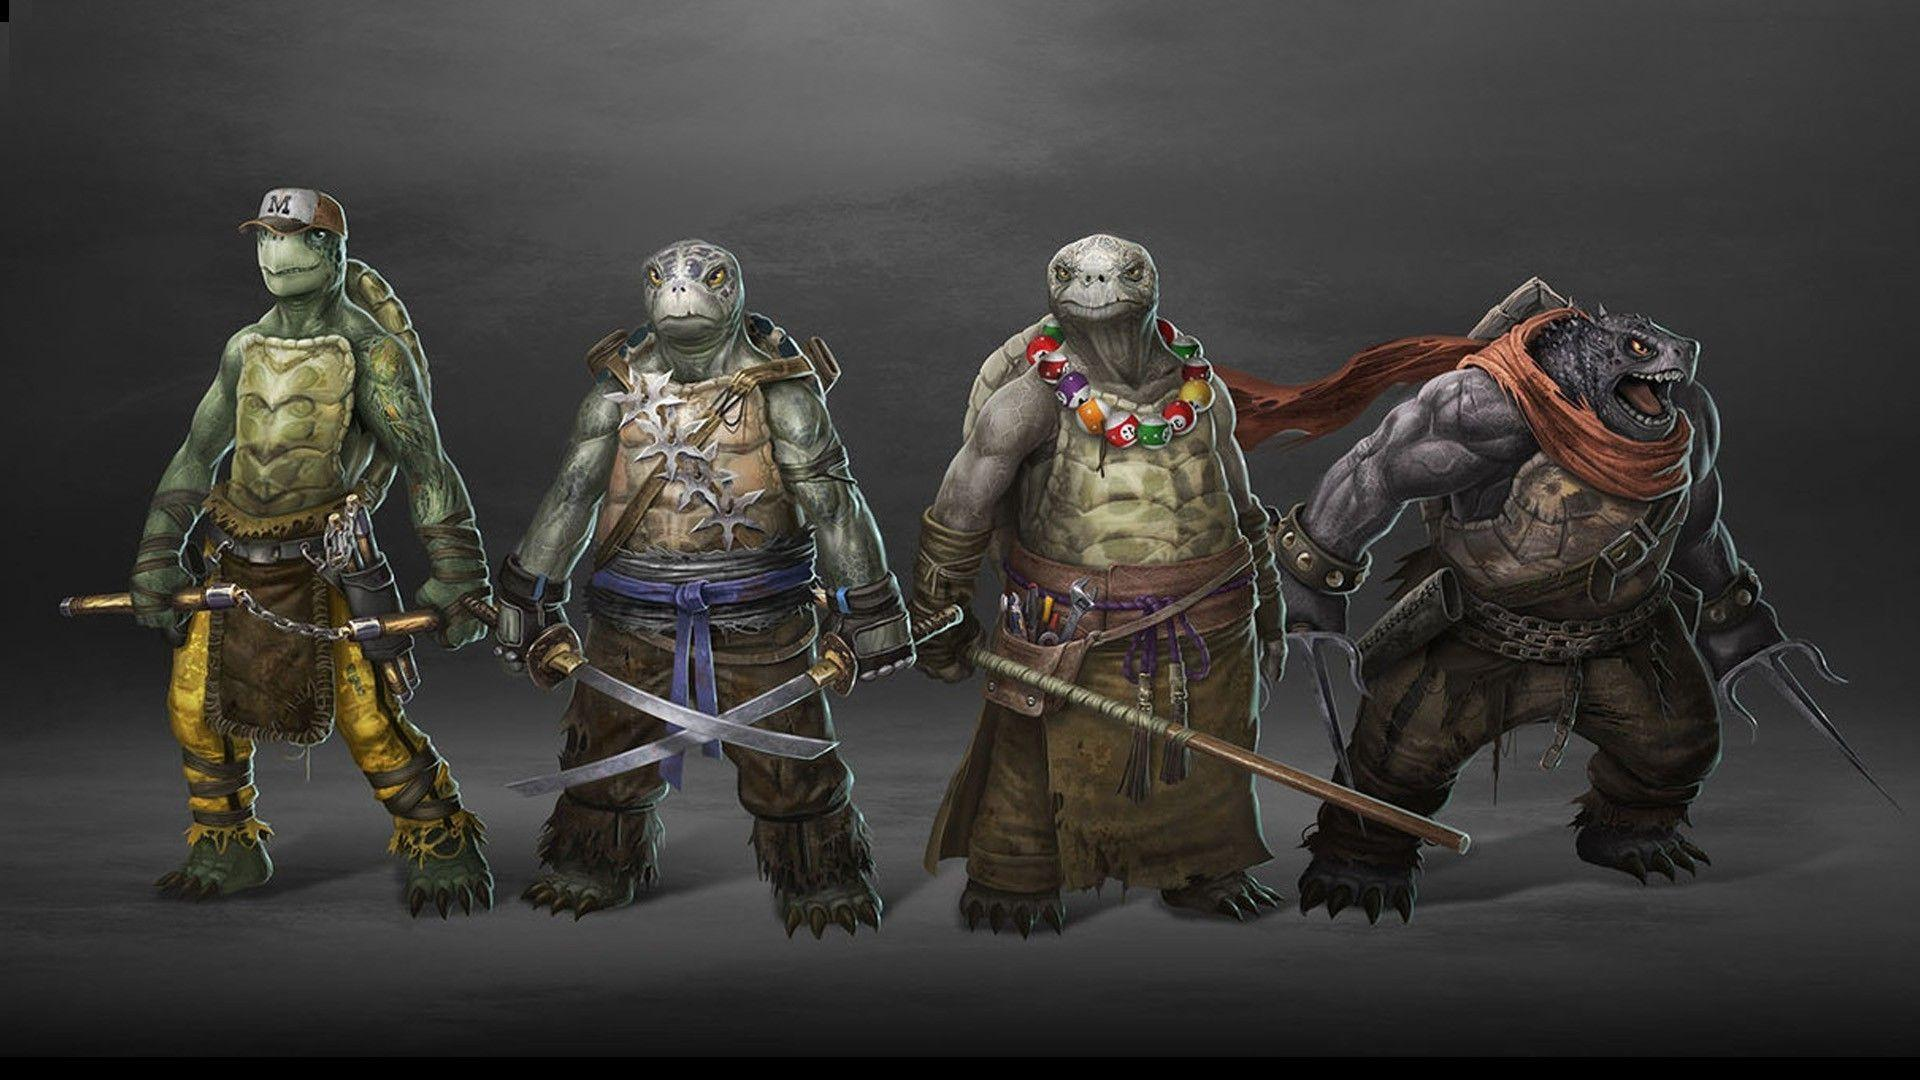 Teenage Mutant Ninja Turtles 2017 Wallpapers - Wallpaper Cave